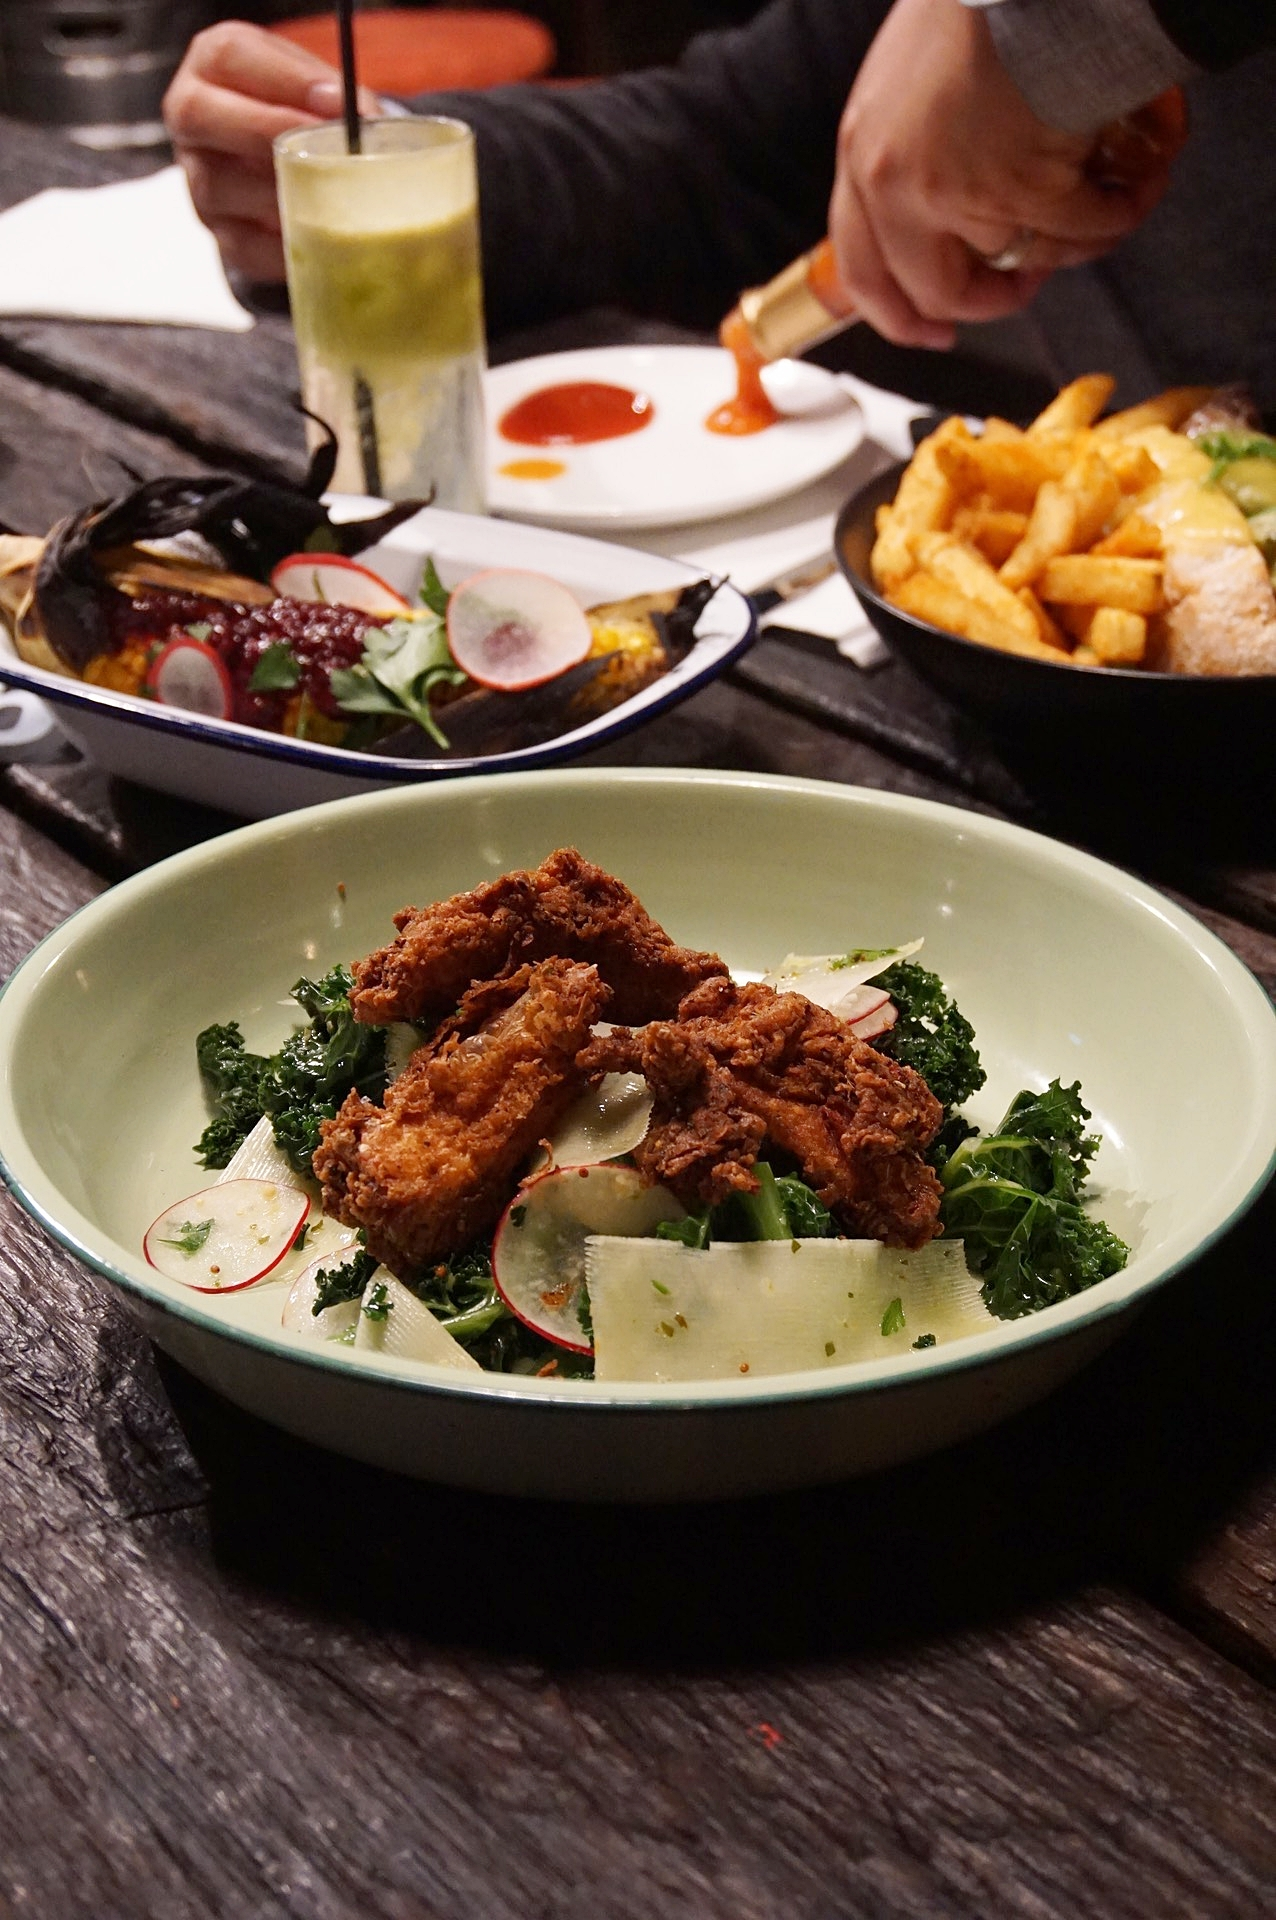 Southern Fried Chicken with Crispy Kale $18